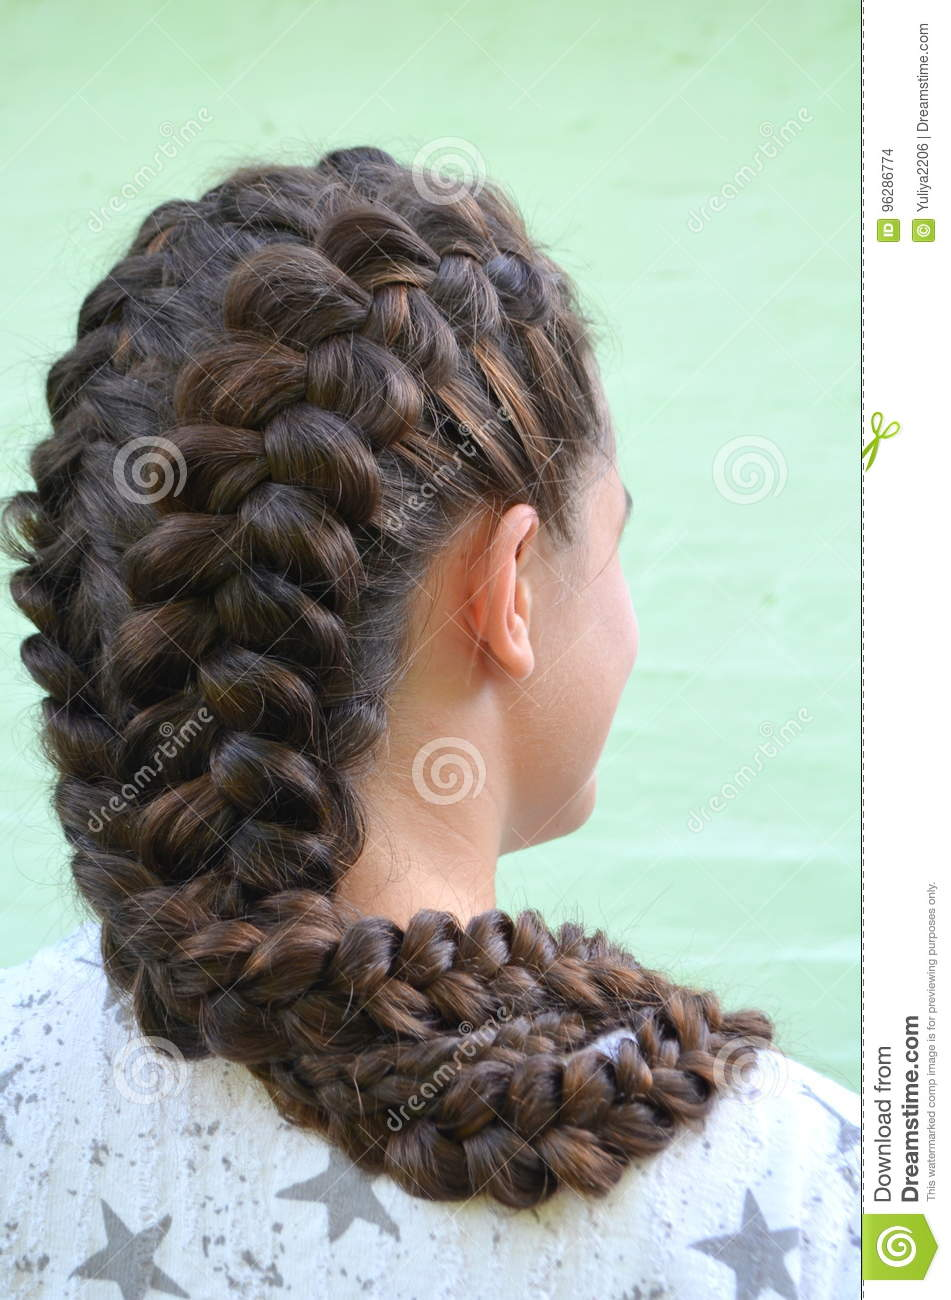 Hairstyle on medium length